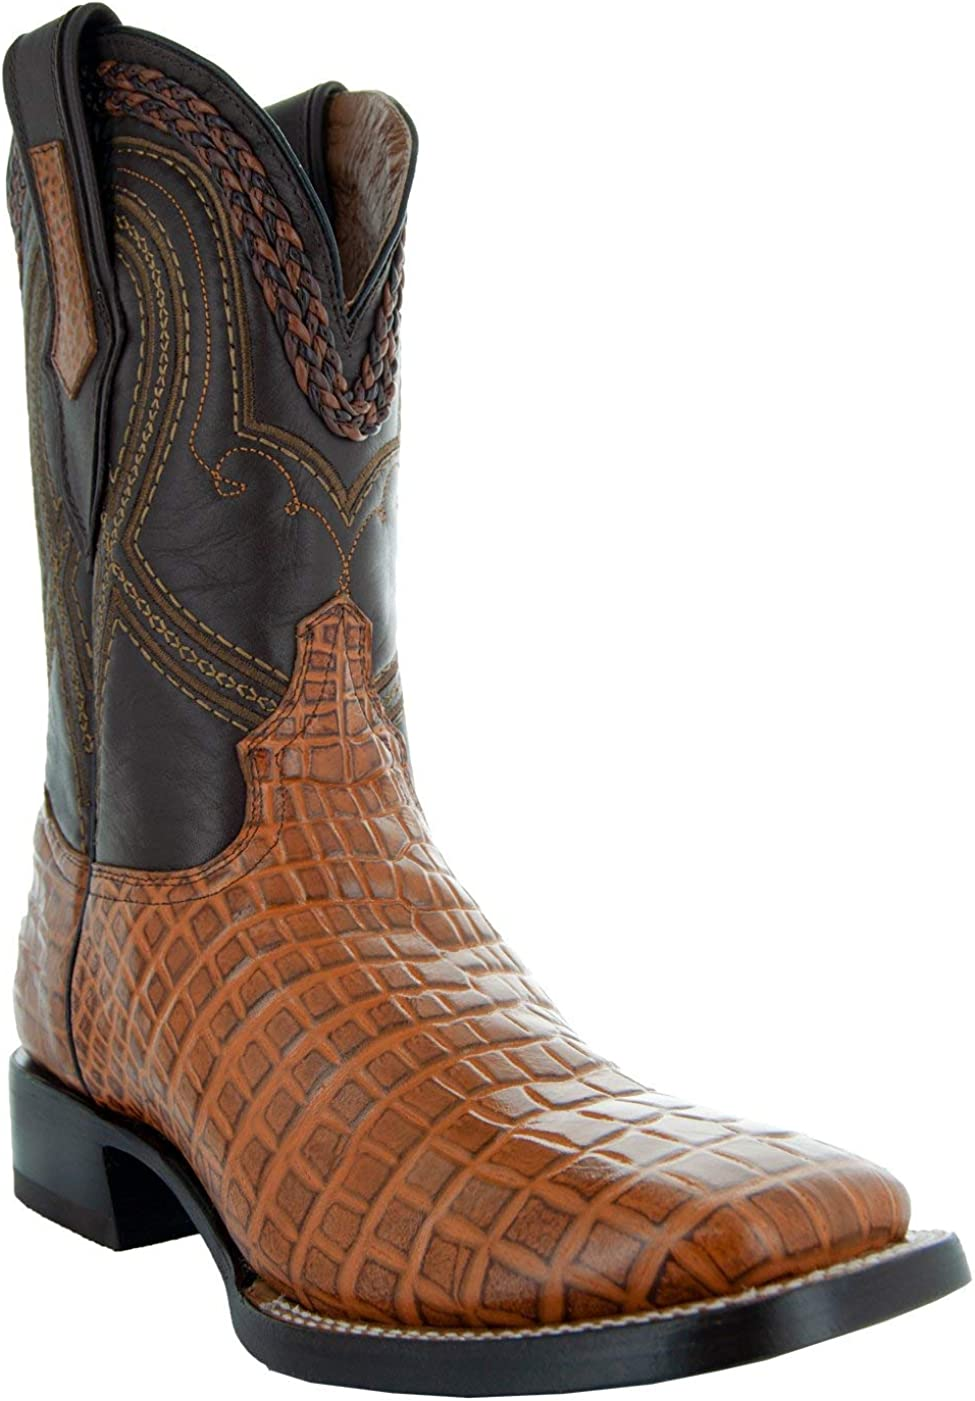 Soto Boots Men/'s Workhorse Square Toe Western Work Boots H4007